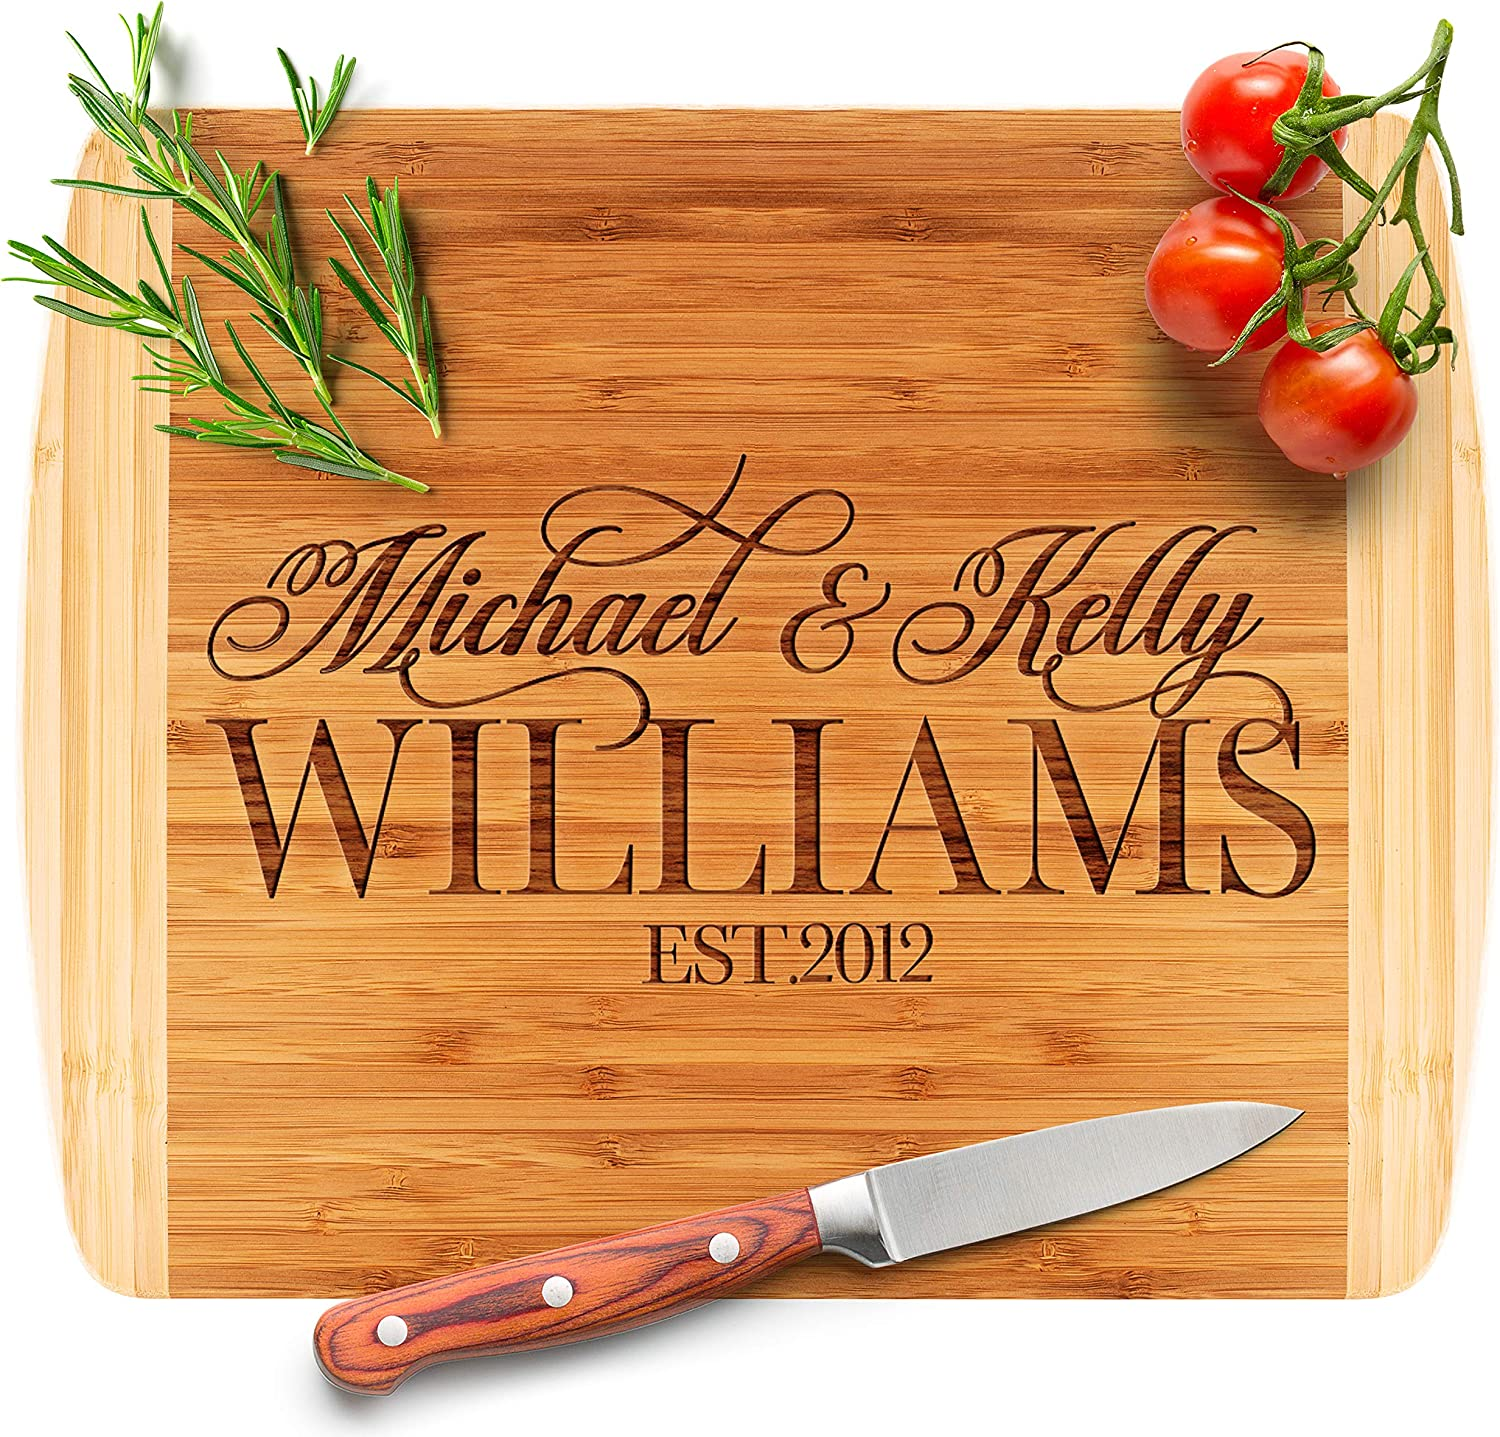 An image of a personalized bamboo chopping board with knife and tomatoes as decorations.